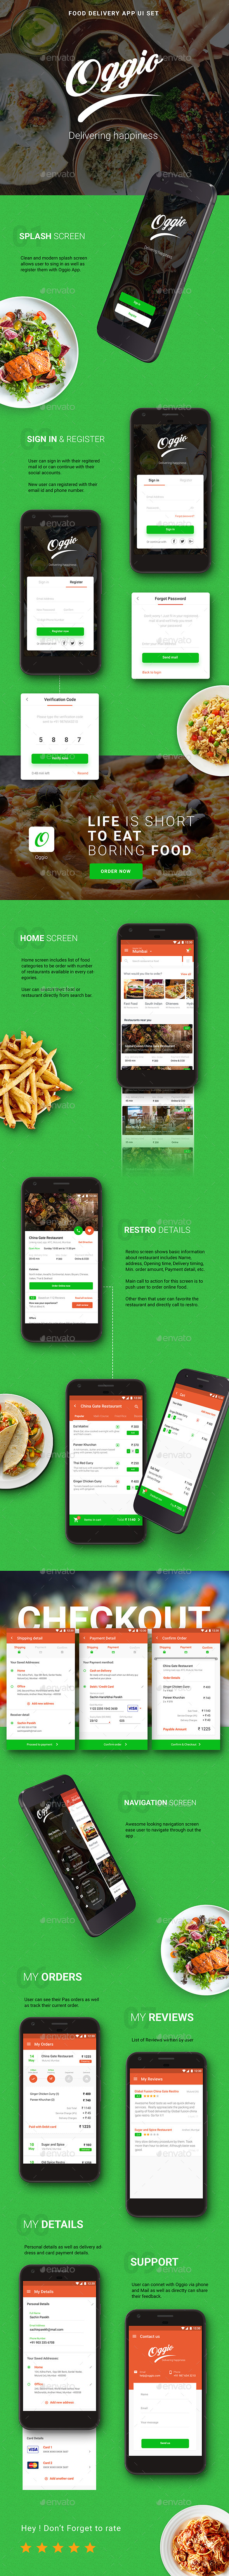 Restaurant Mobile App (User Interfaces)